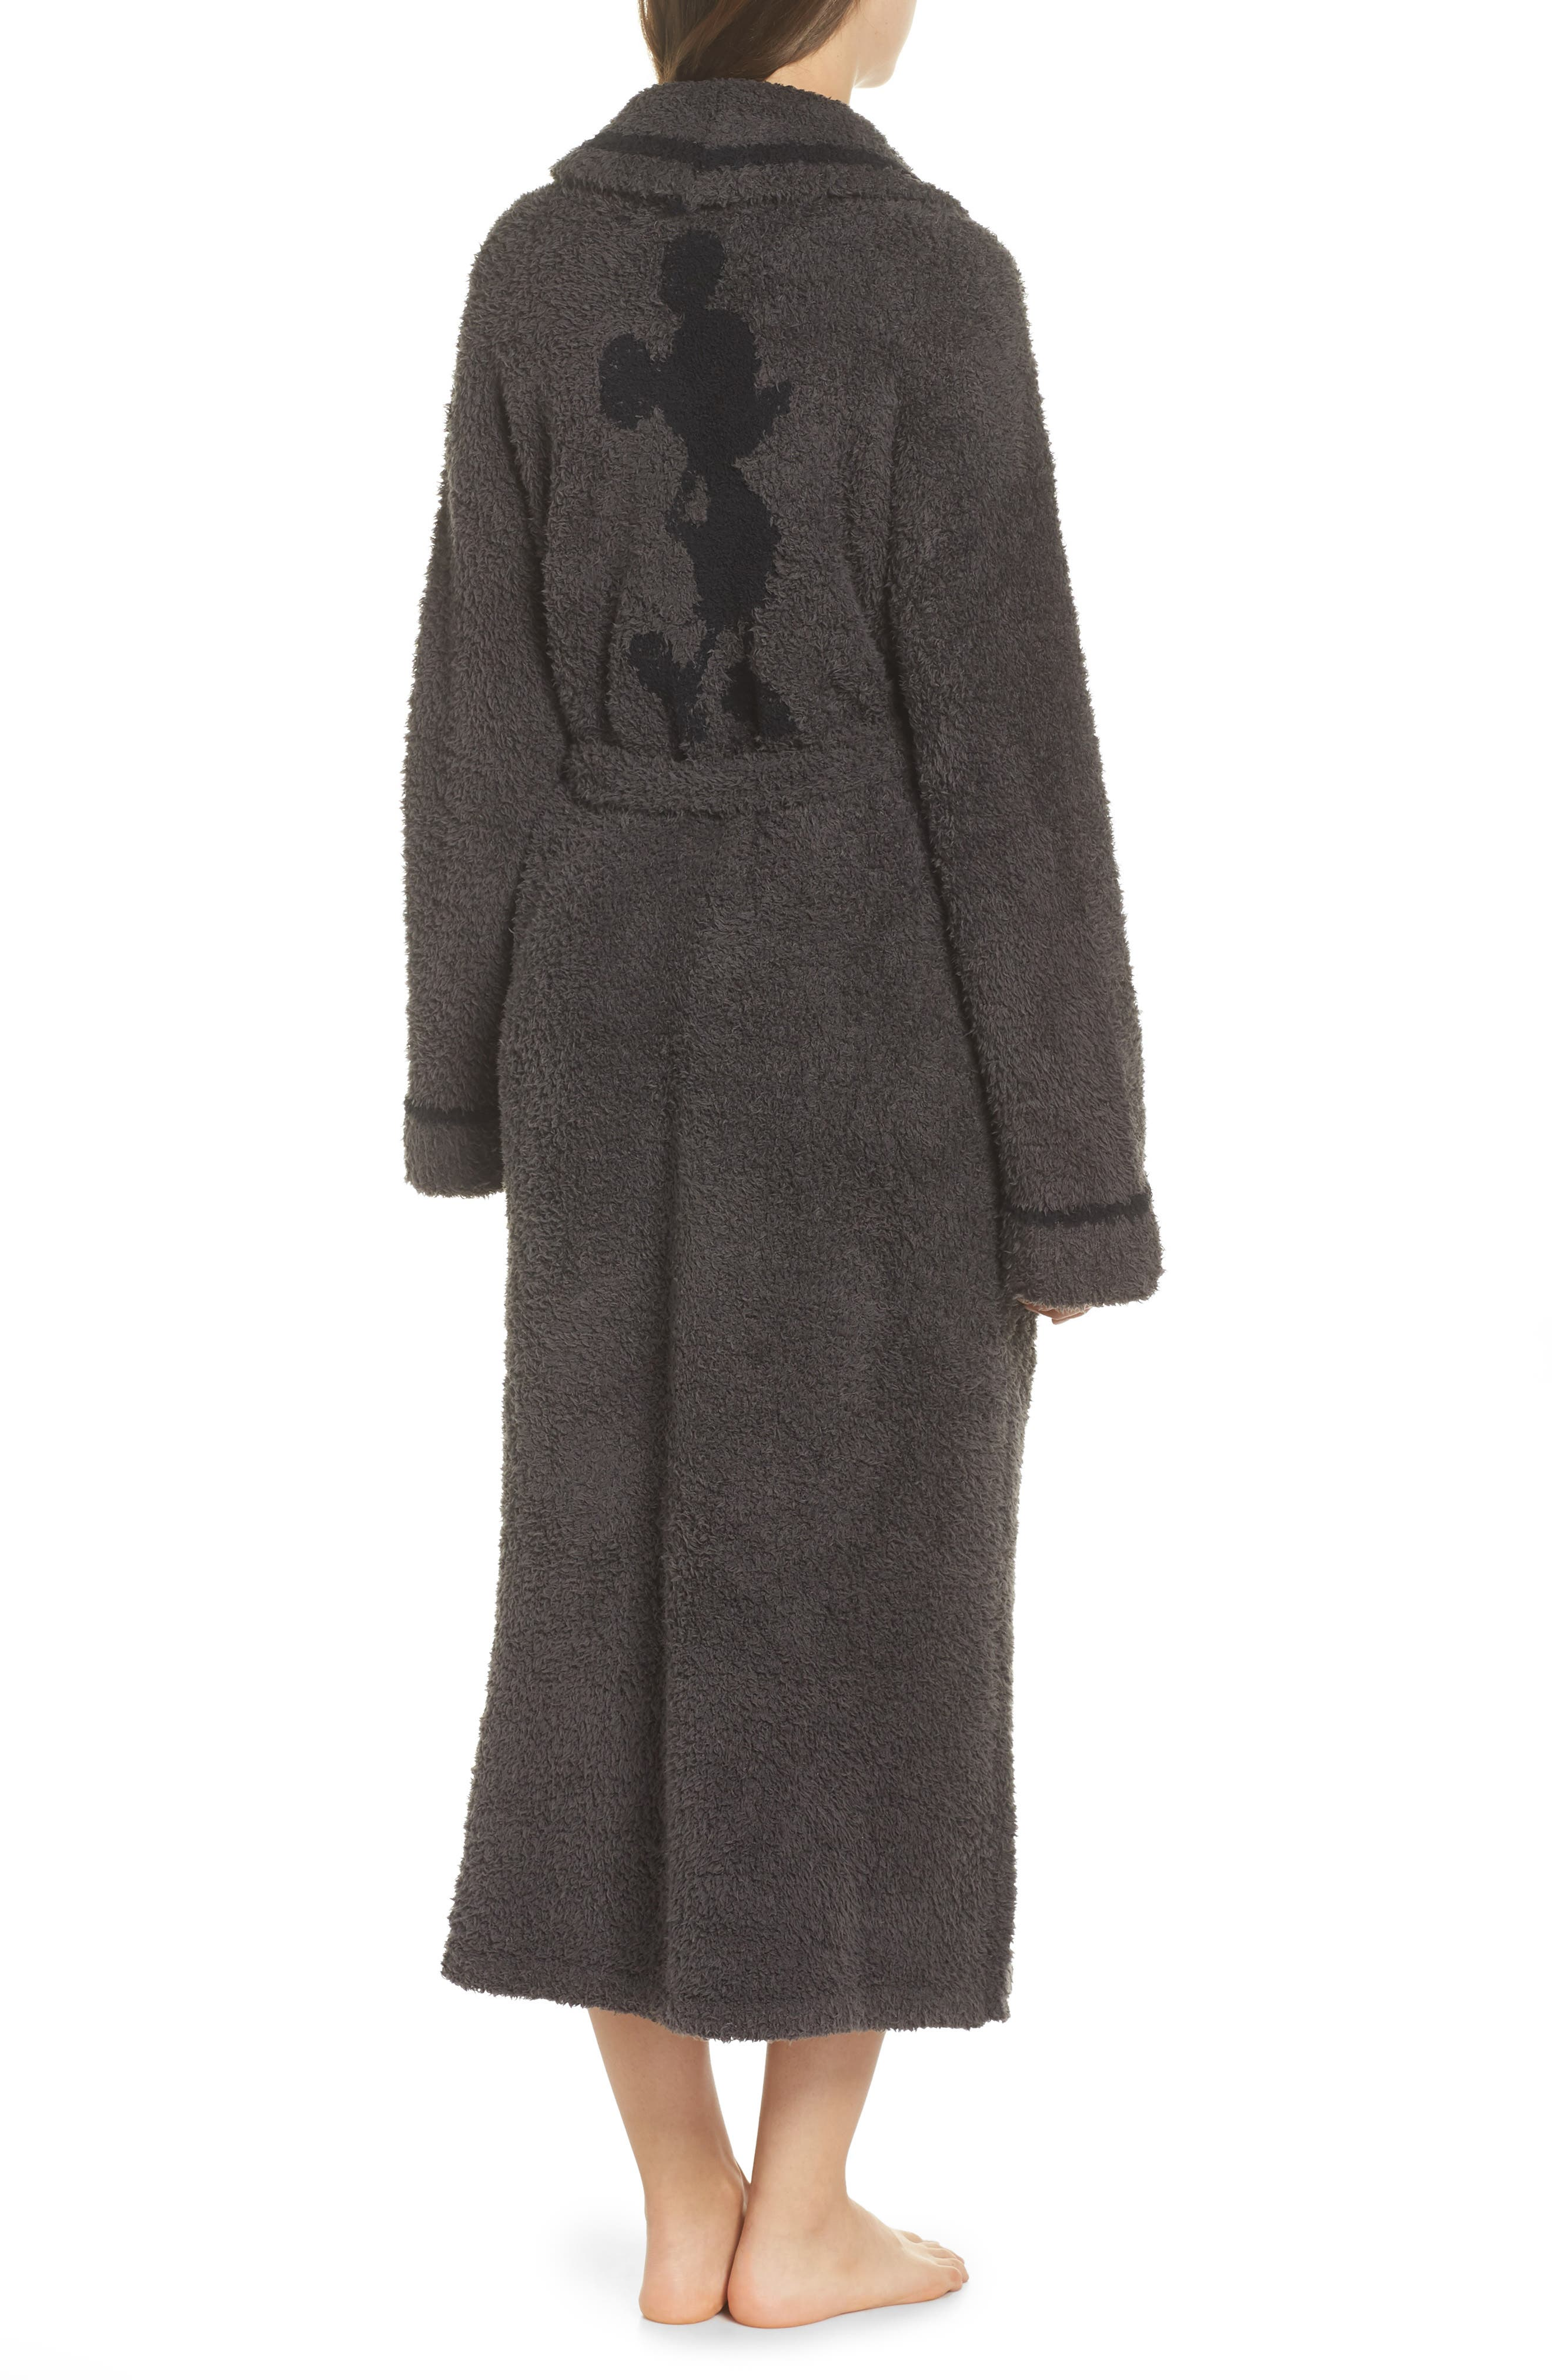 x Disney Classic Series CozyChic<sup>®</sup> Robe,                             Alternate thumbnail 2, color,                             CARBON/ BLACK